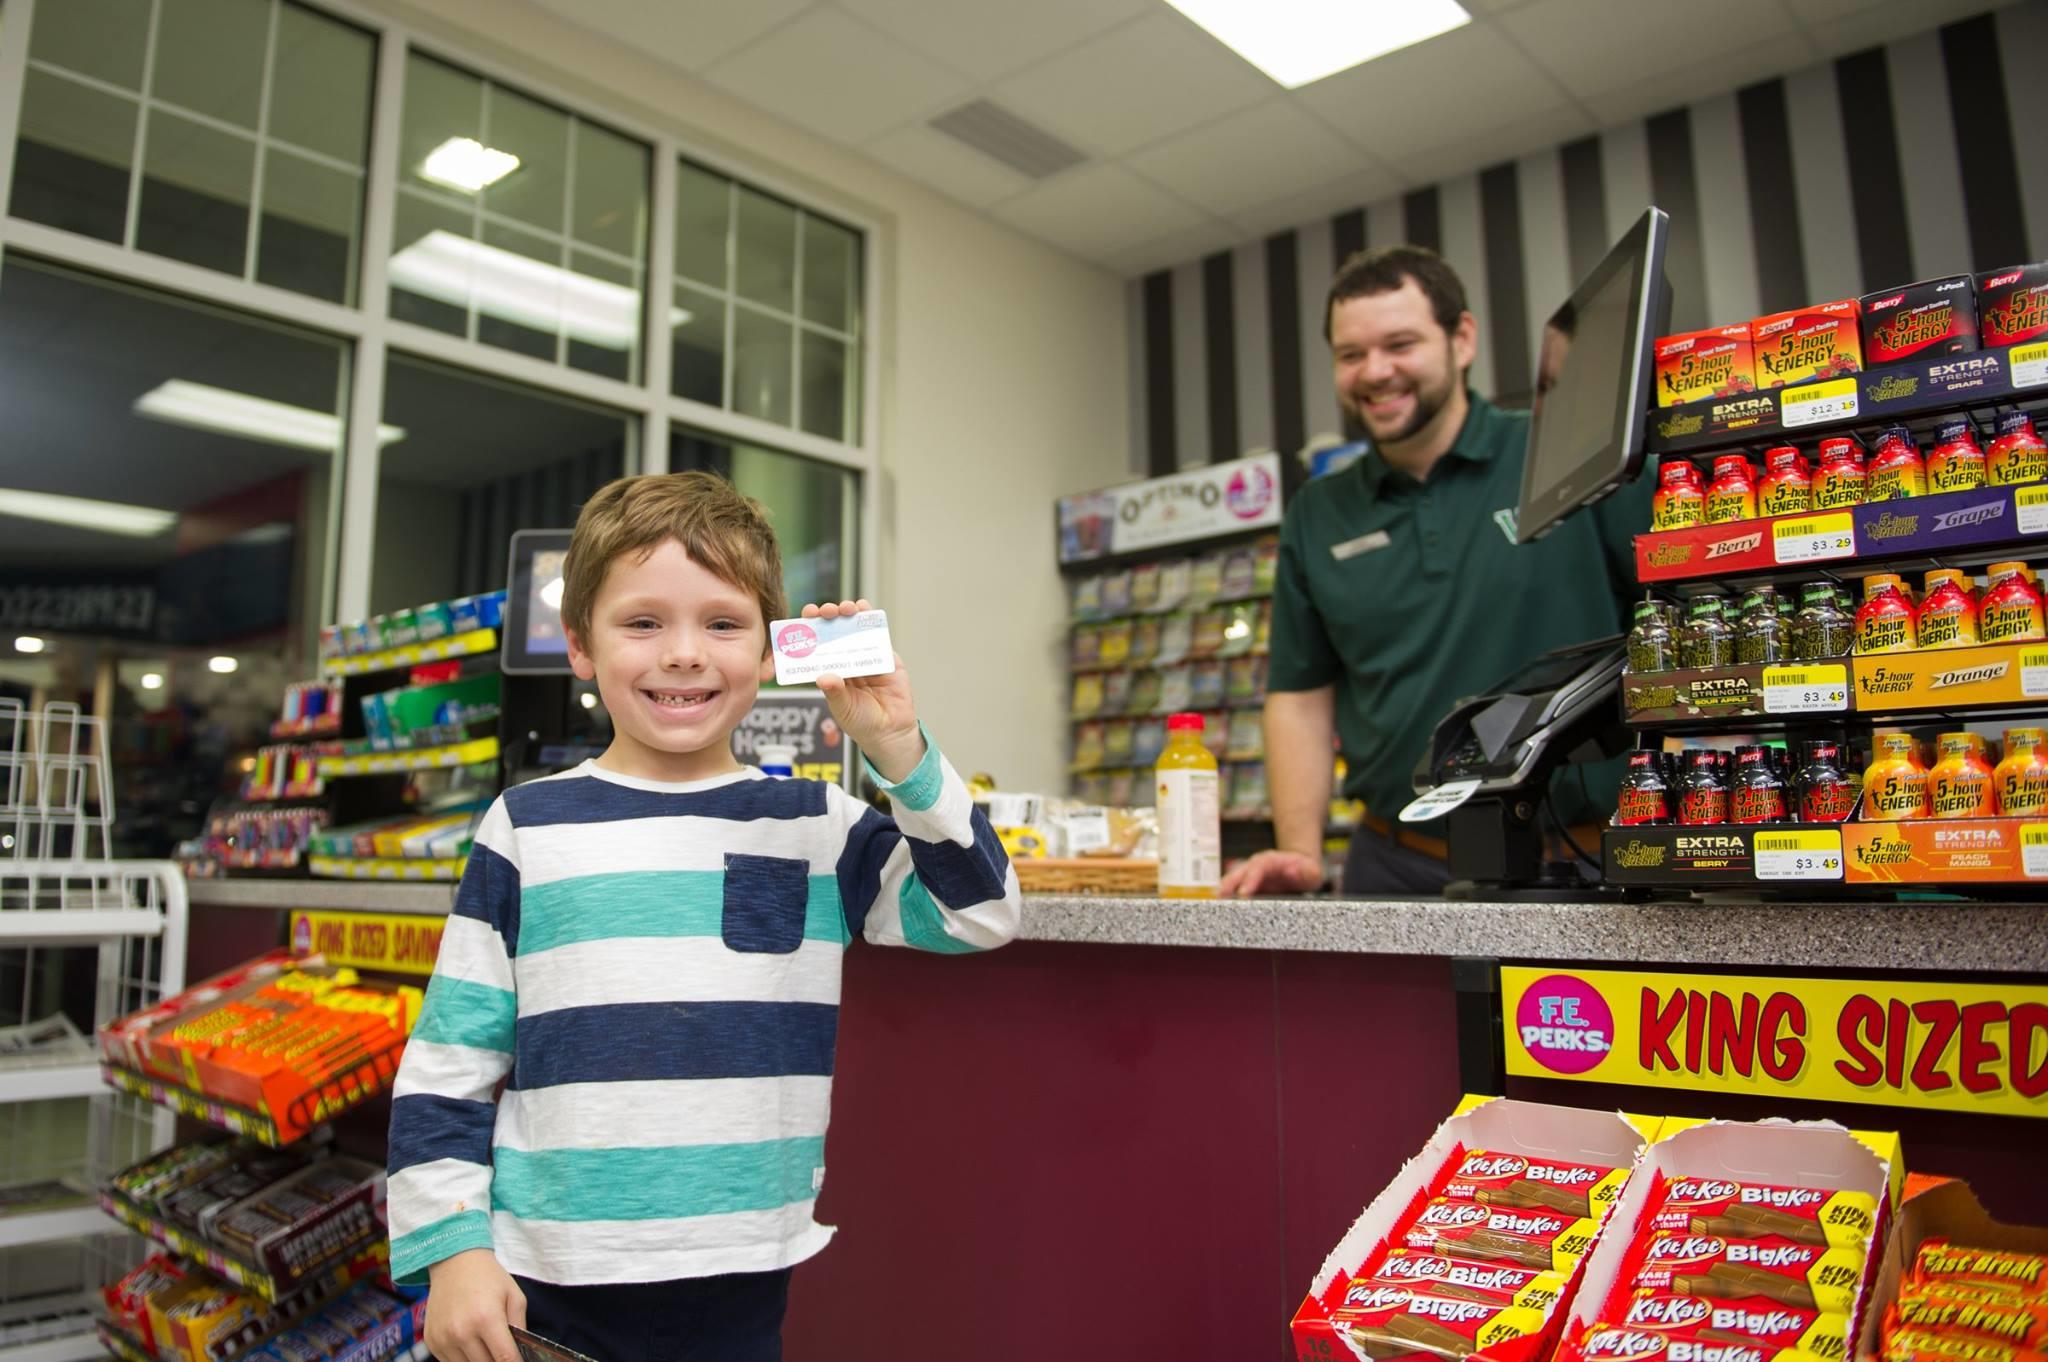 Family Express image 3